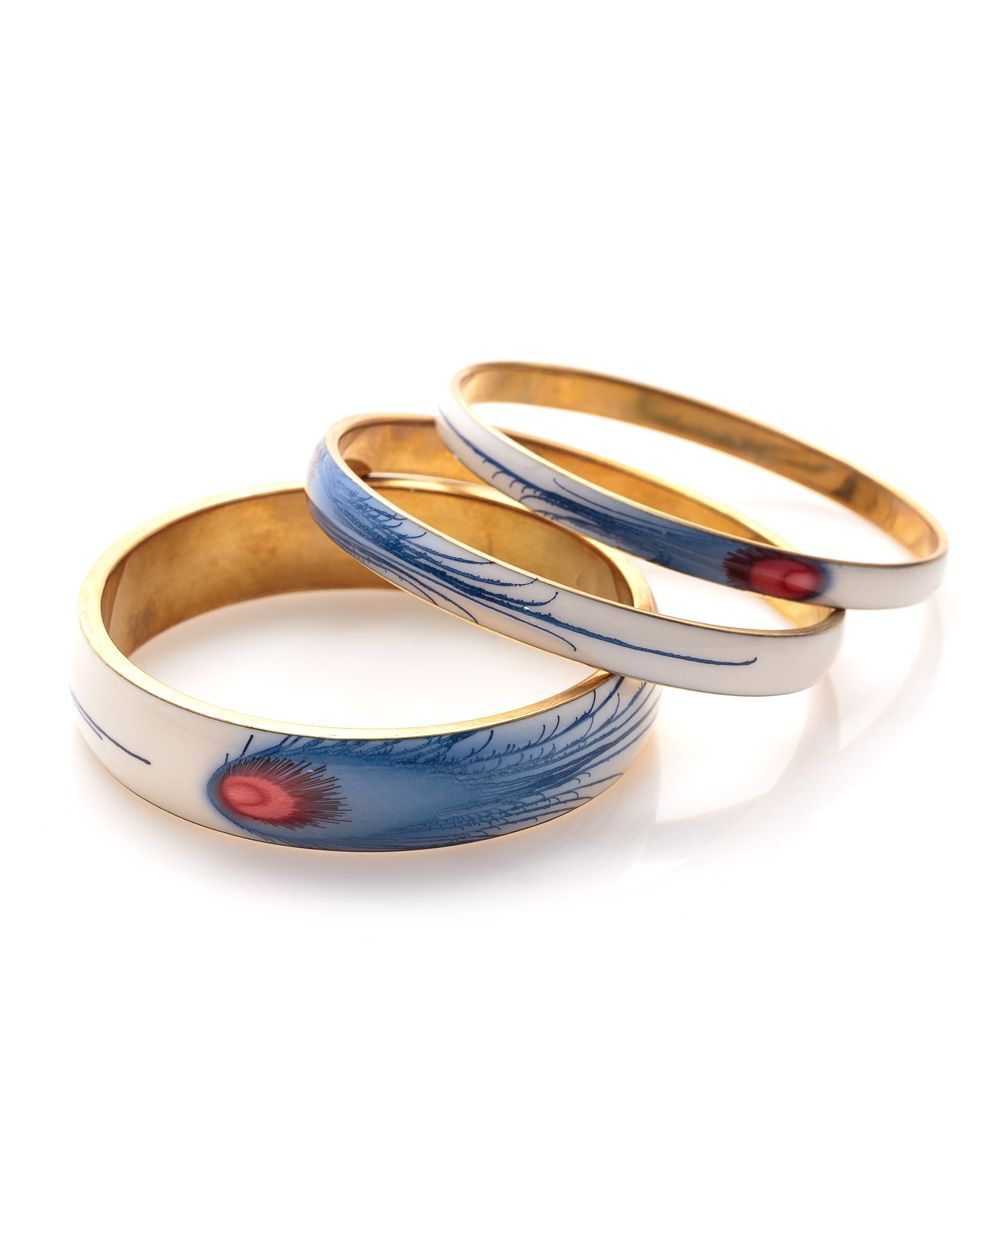 Peacock bangle set